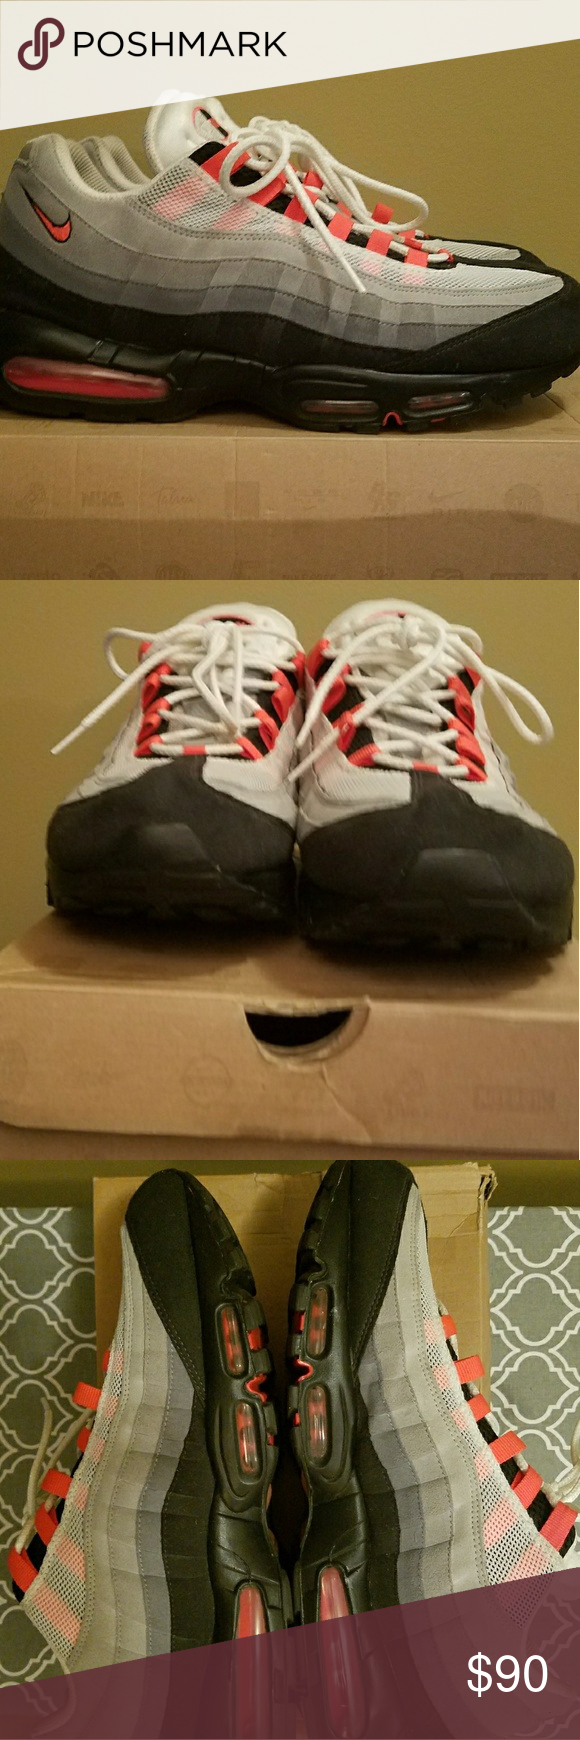 new product 1d303 7228d Air Max 95. Classic hard to find color way. All low ball offers will get  declined. Nike Shoes Sneakers